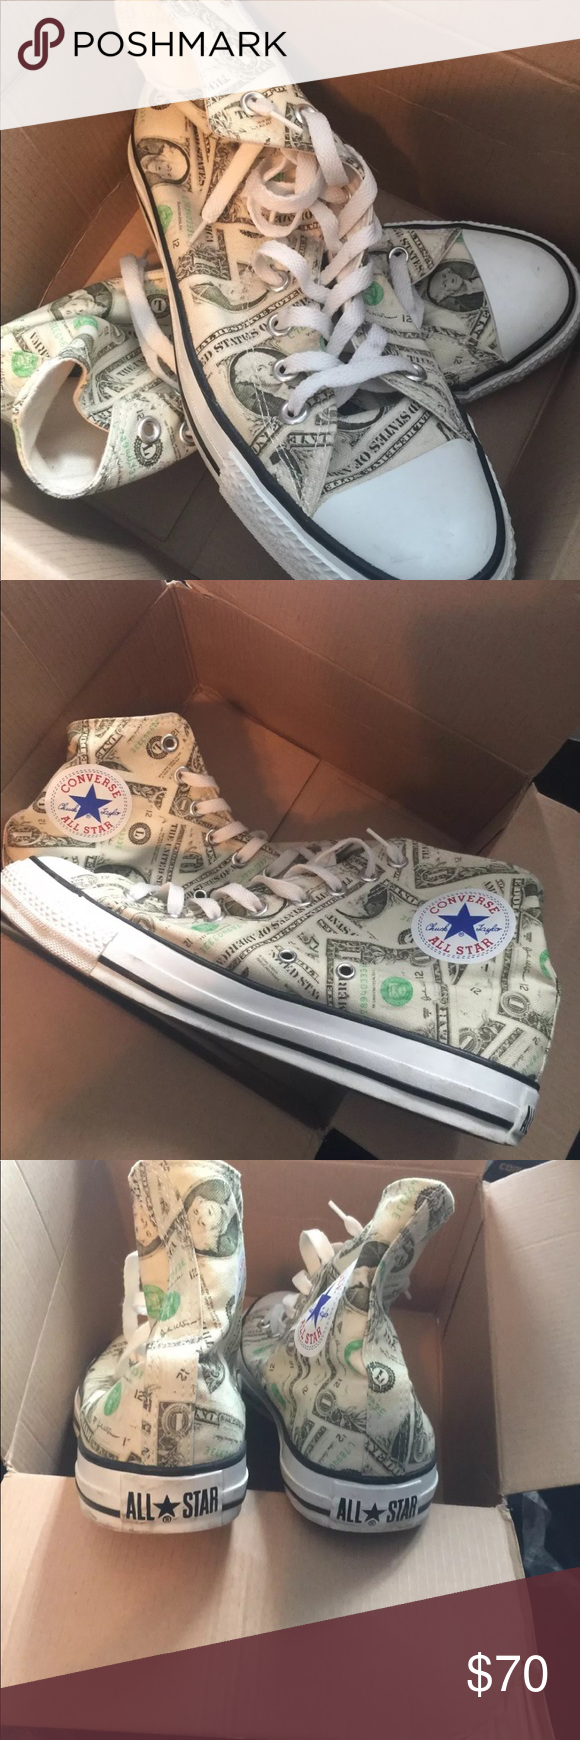 Rare Dollar Converse From An For Very Close To New Except Light Dirt Will Clean Before Shipping Can Fit A Size 10 Women S If Worn With Thick